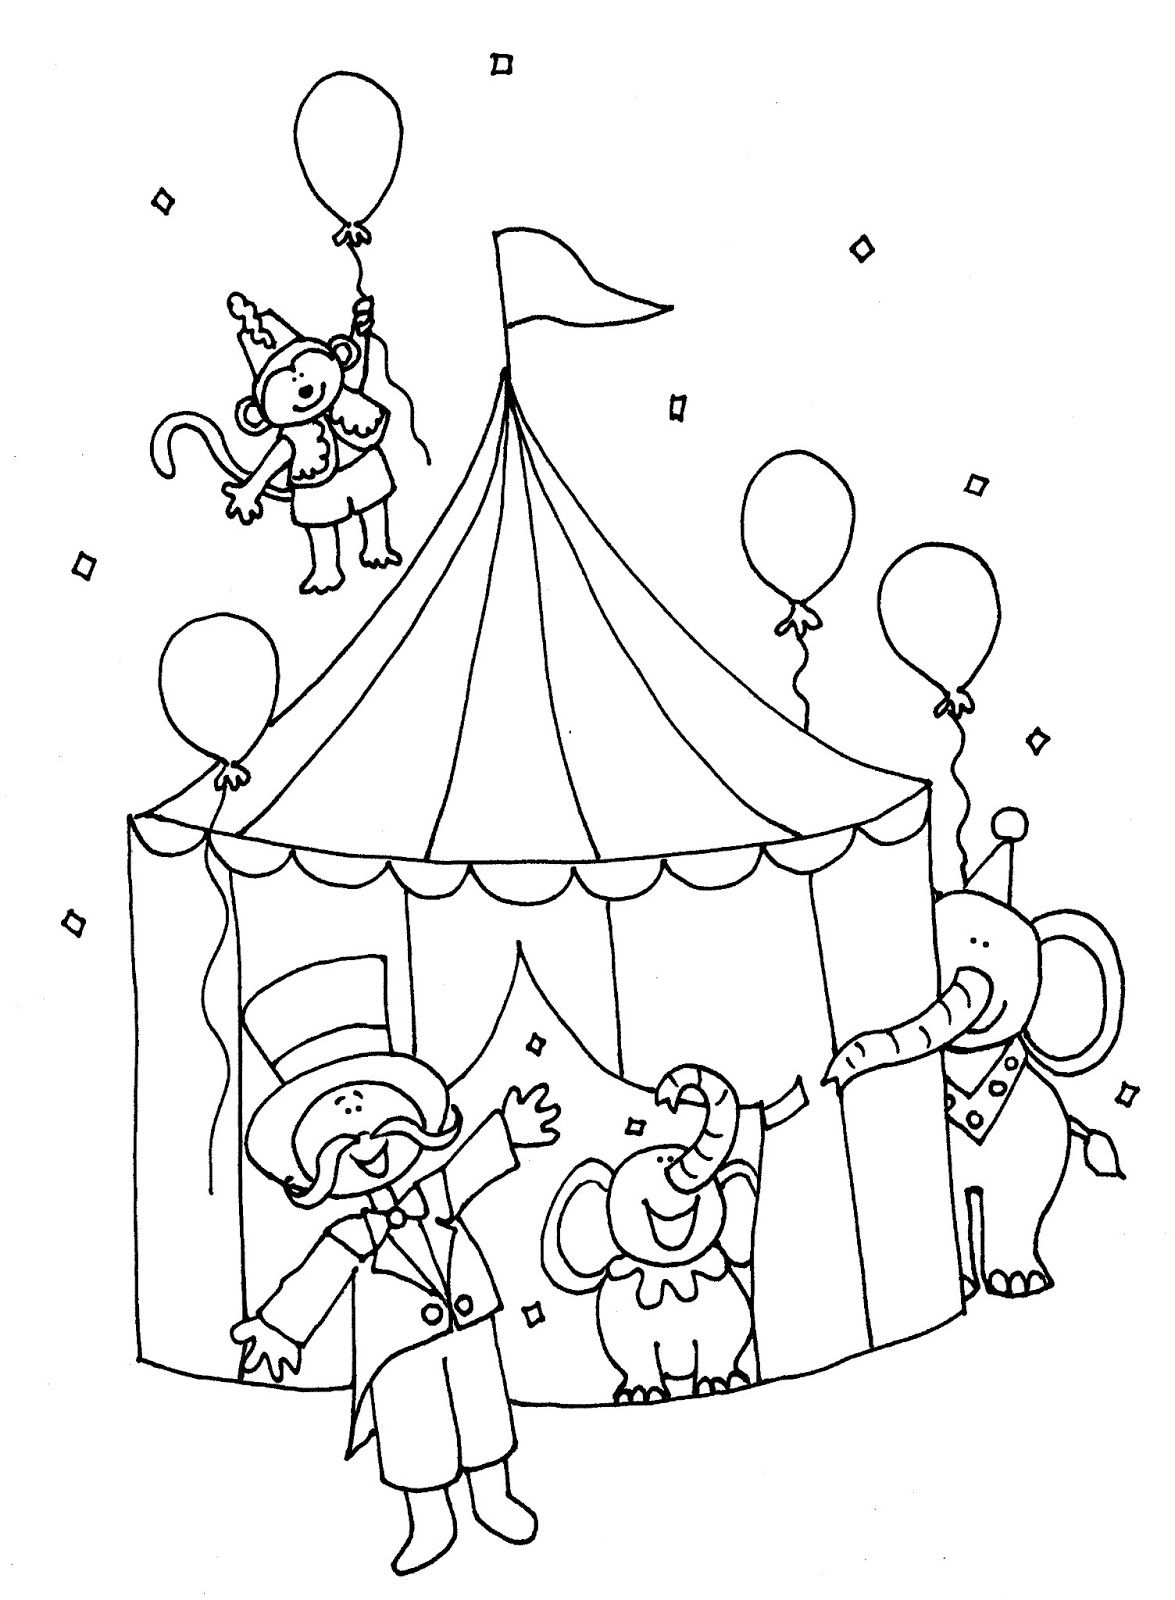 Tent Coloring Page Printable Tent Coloring Page Free